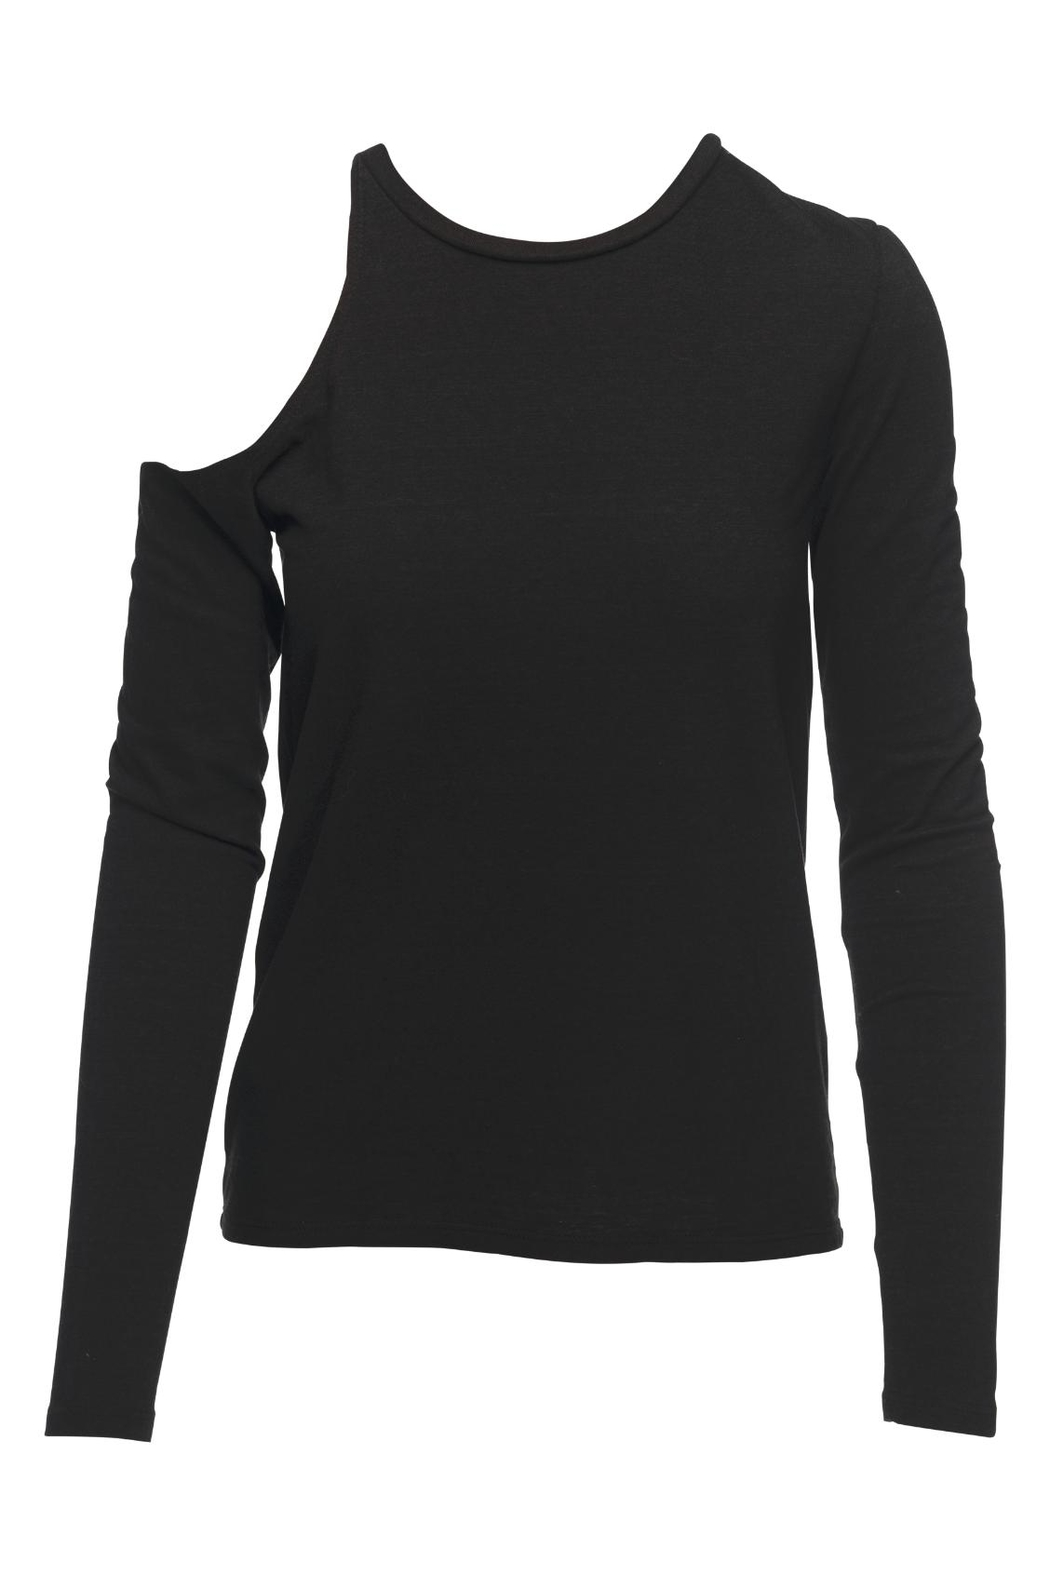 Pam & Gela Shoulder Cutout Tee - Front Cropped Image